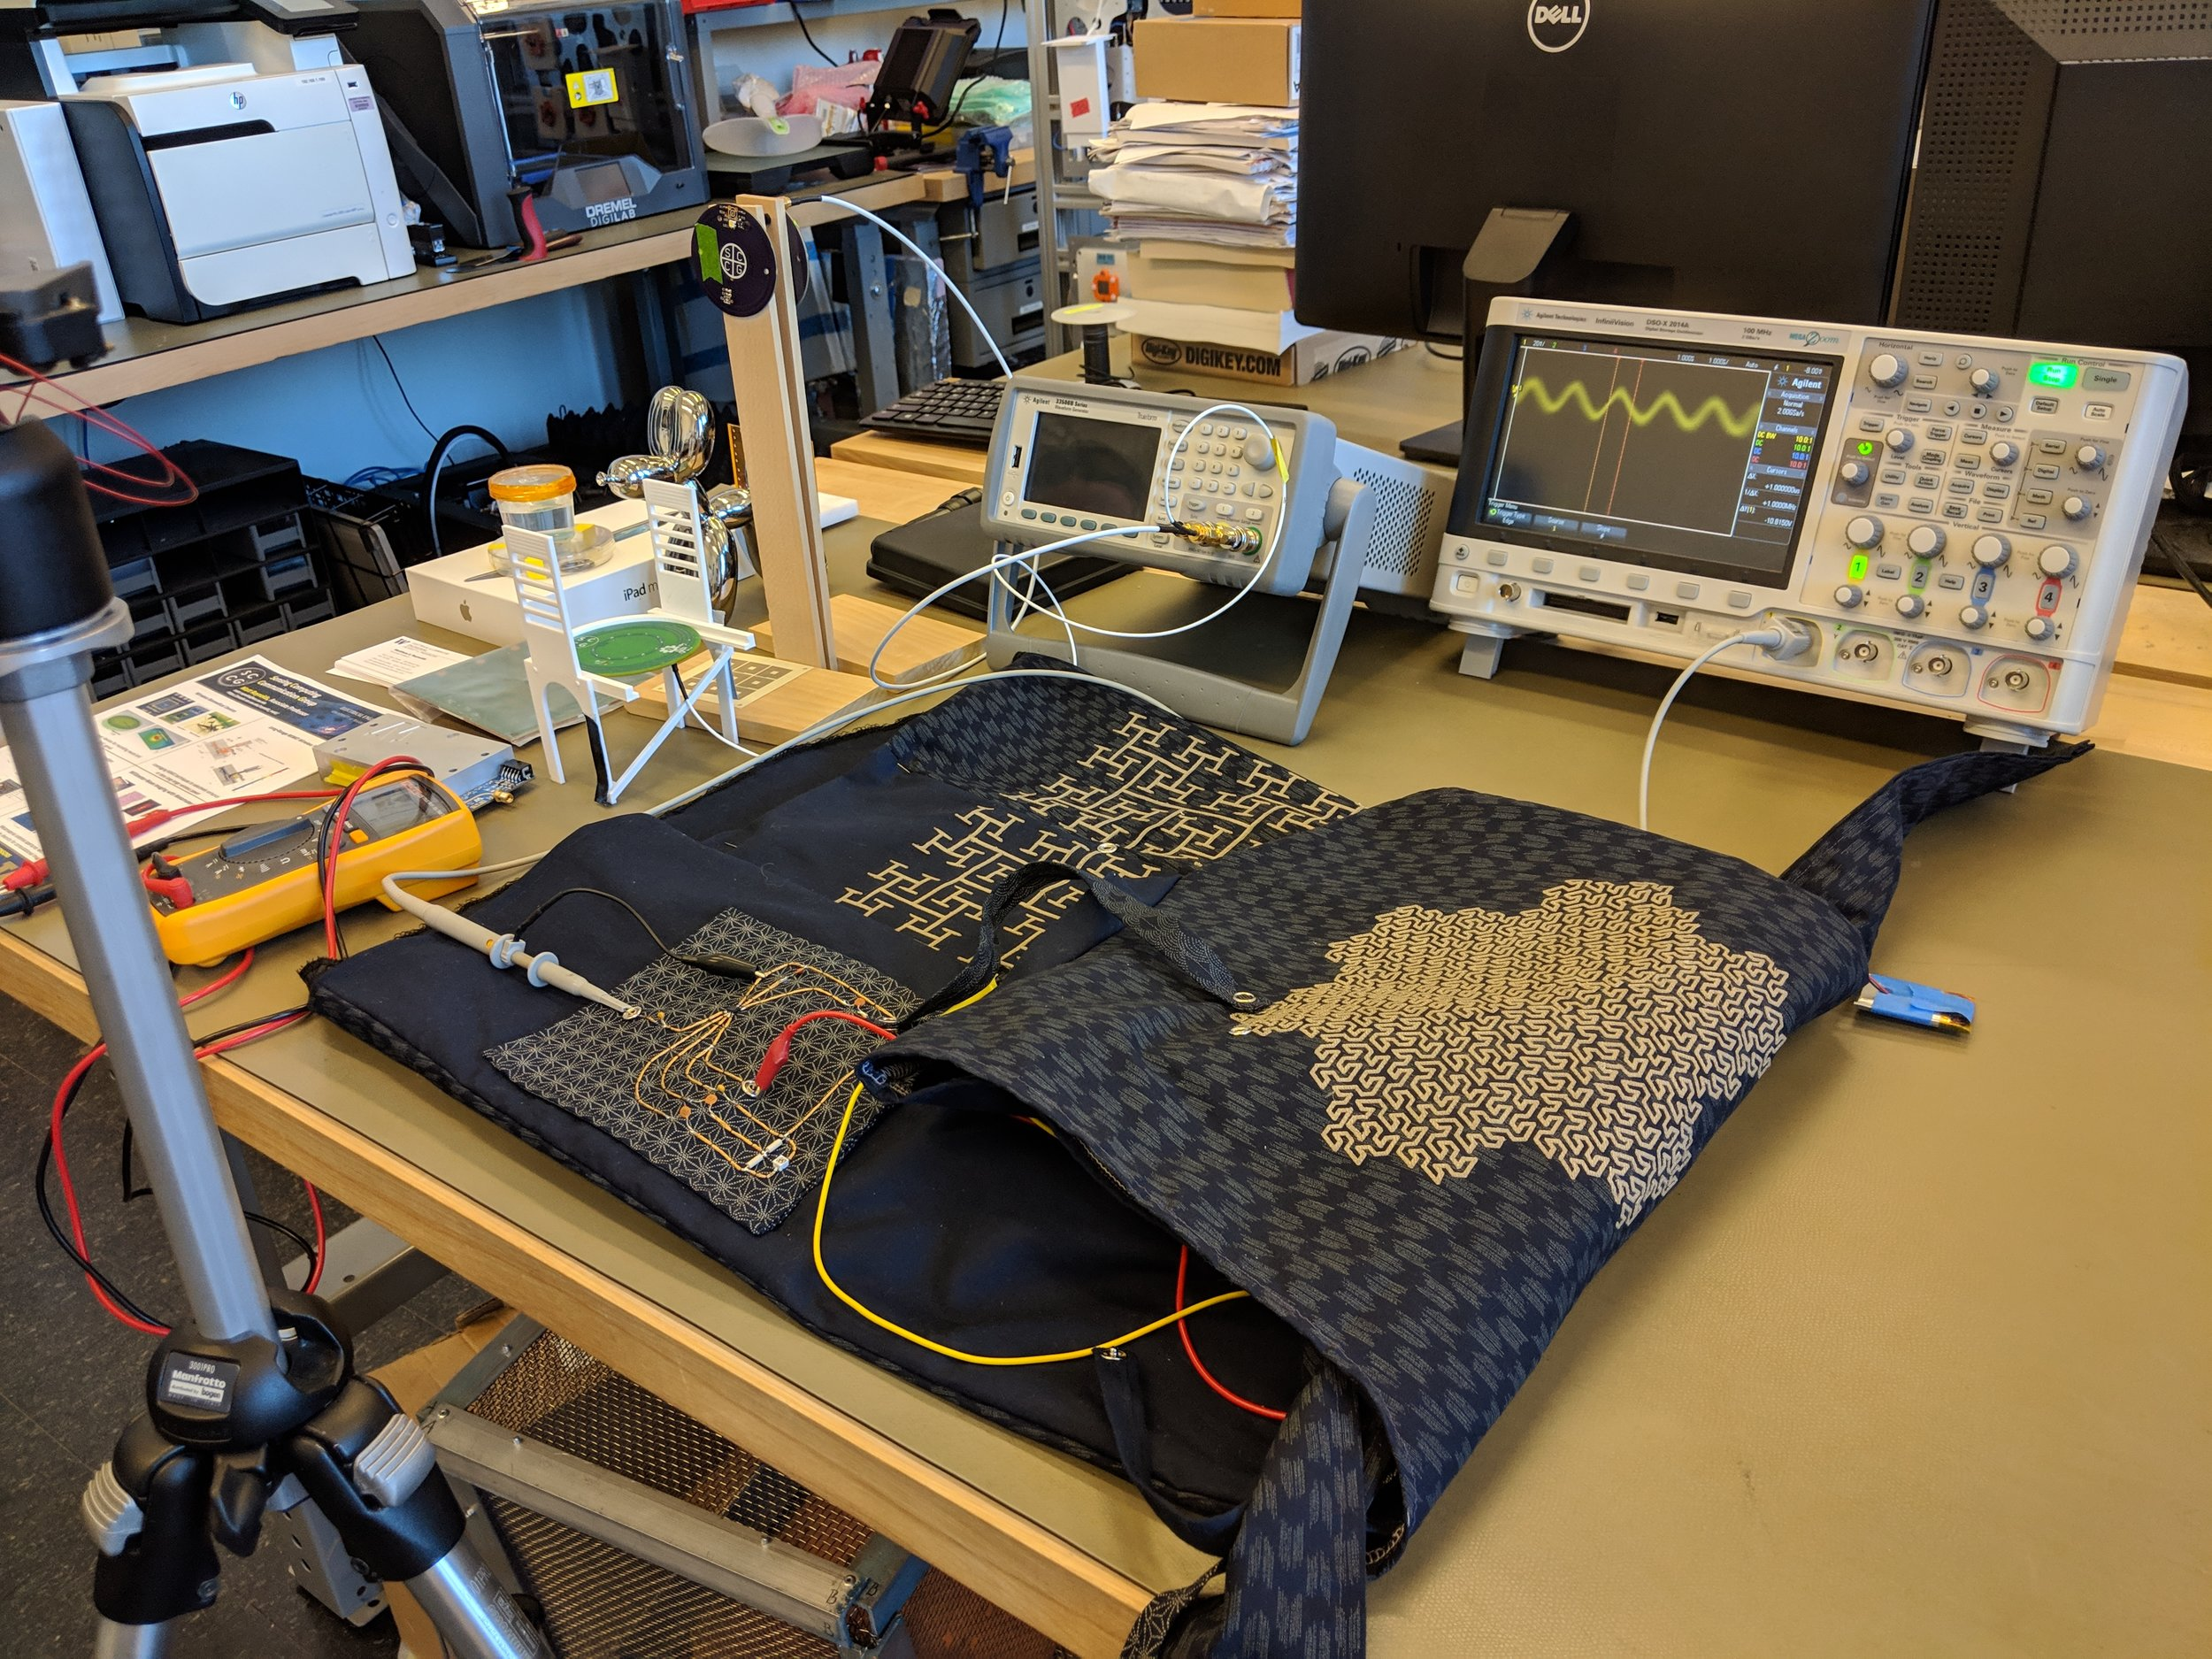 Following the previous posts on Fractal Antennae and VNA measurements, this is the tuning process for the down converter circuit of the wearable. This experiment took place at the Reynolds Lab in Electrical Engineering at UW with the valuable help of James Rosental (PhD student in E.E.).